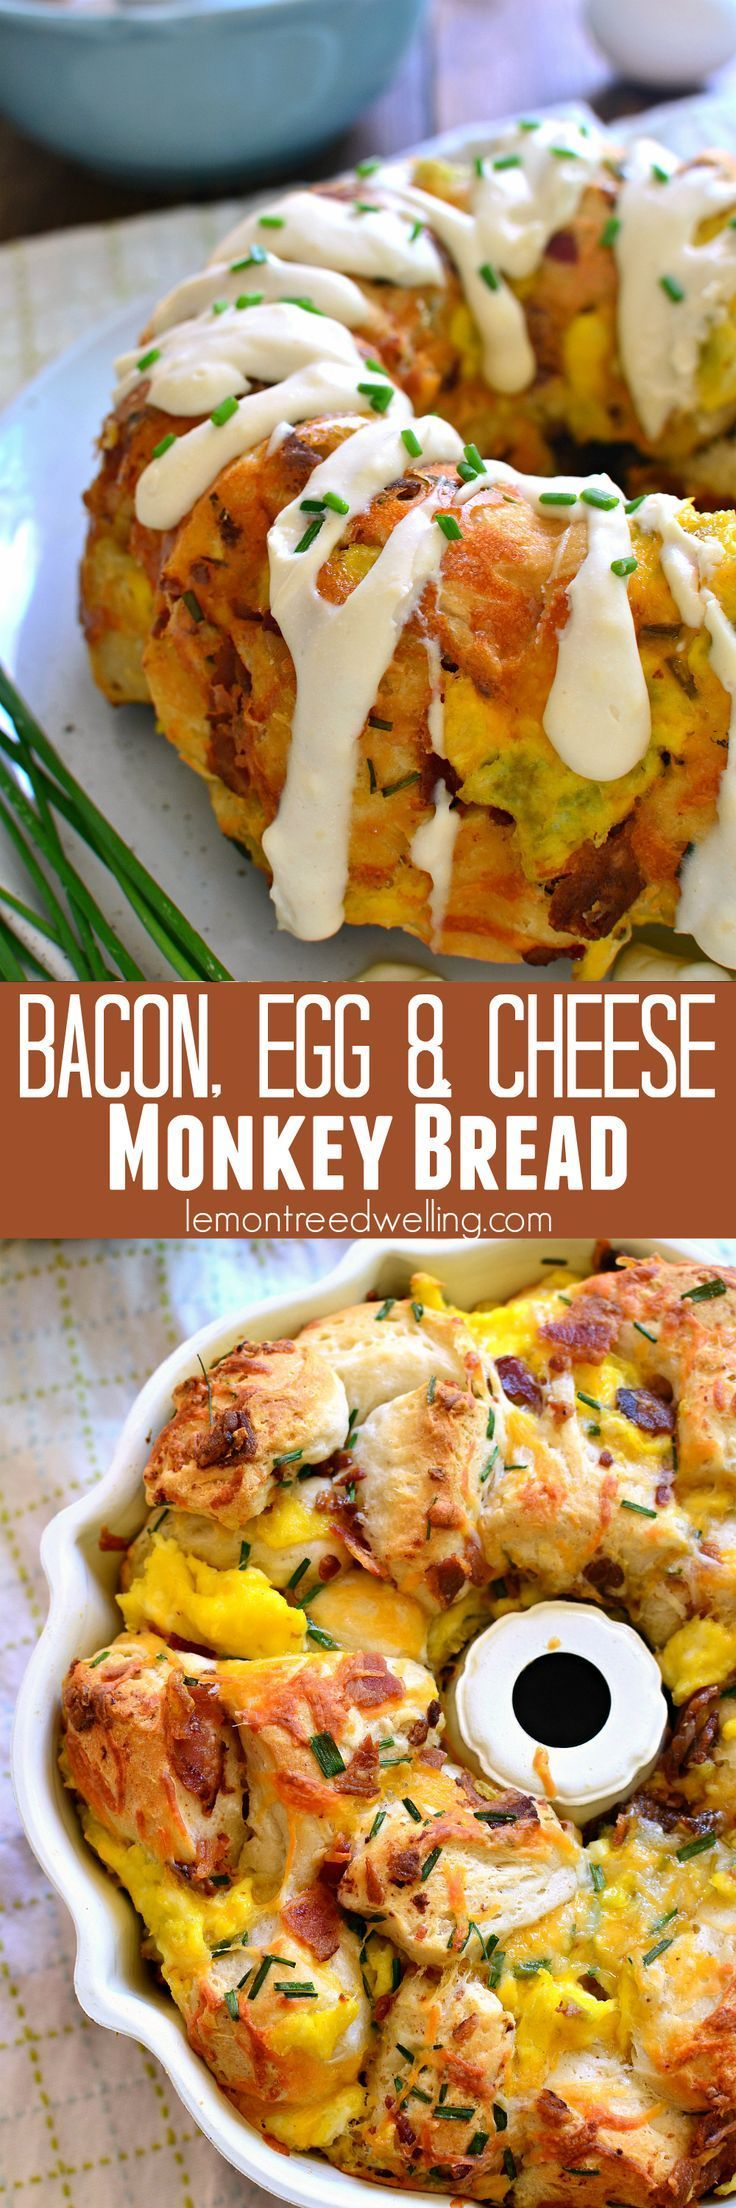 This Bacon, Egg & Cheese Monkey Bread combines all your breakfast favorites…...